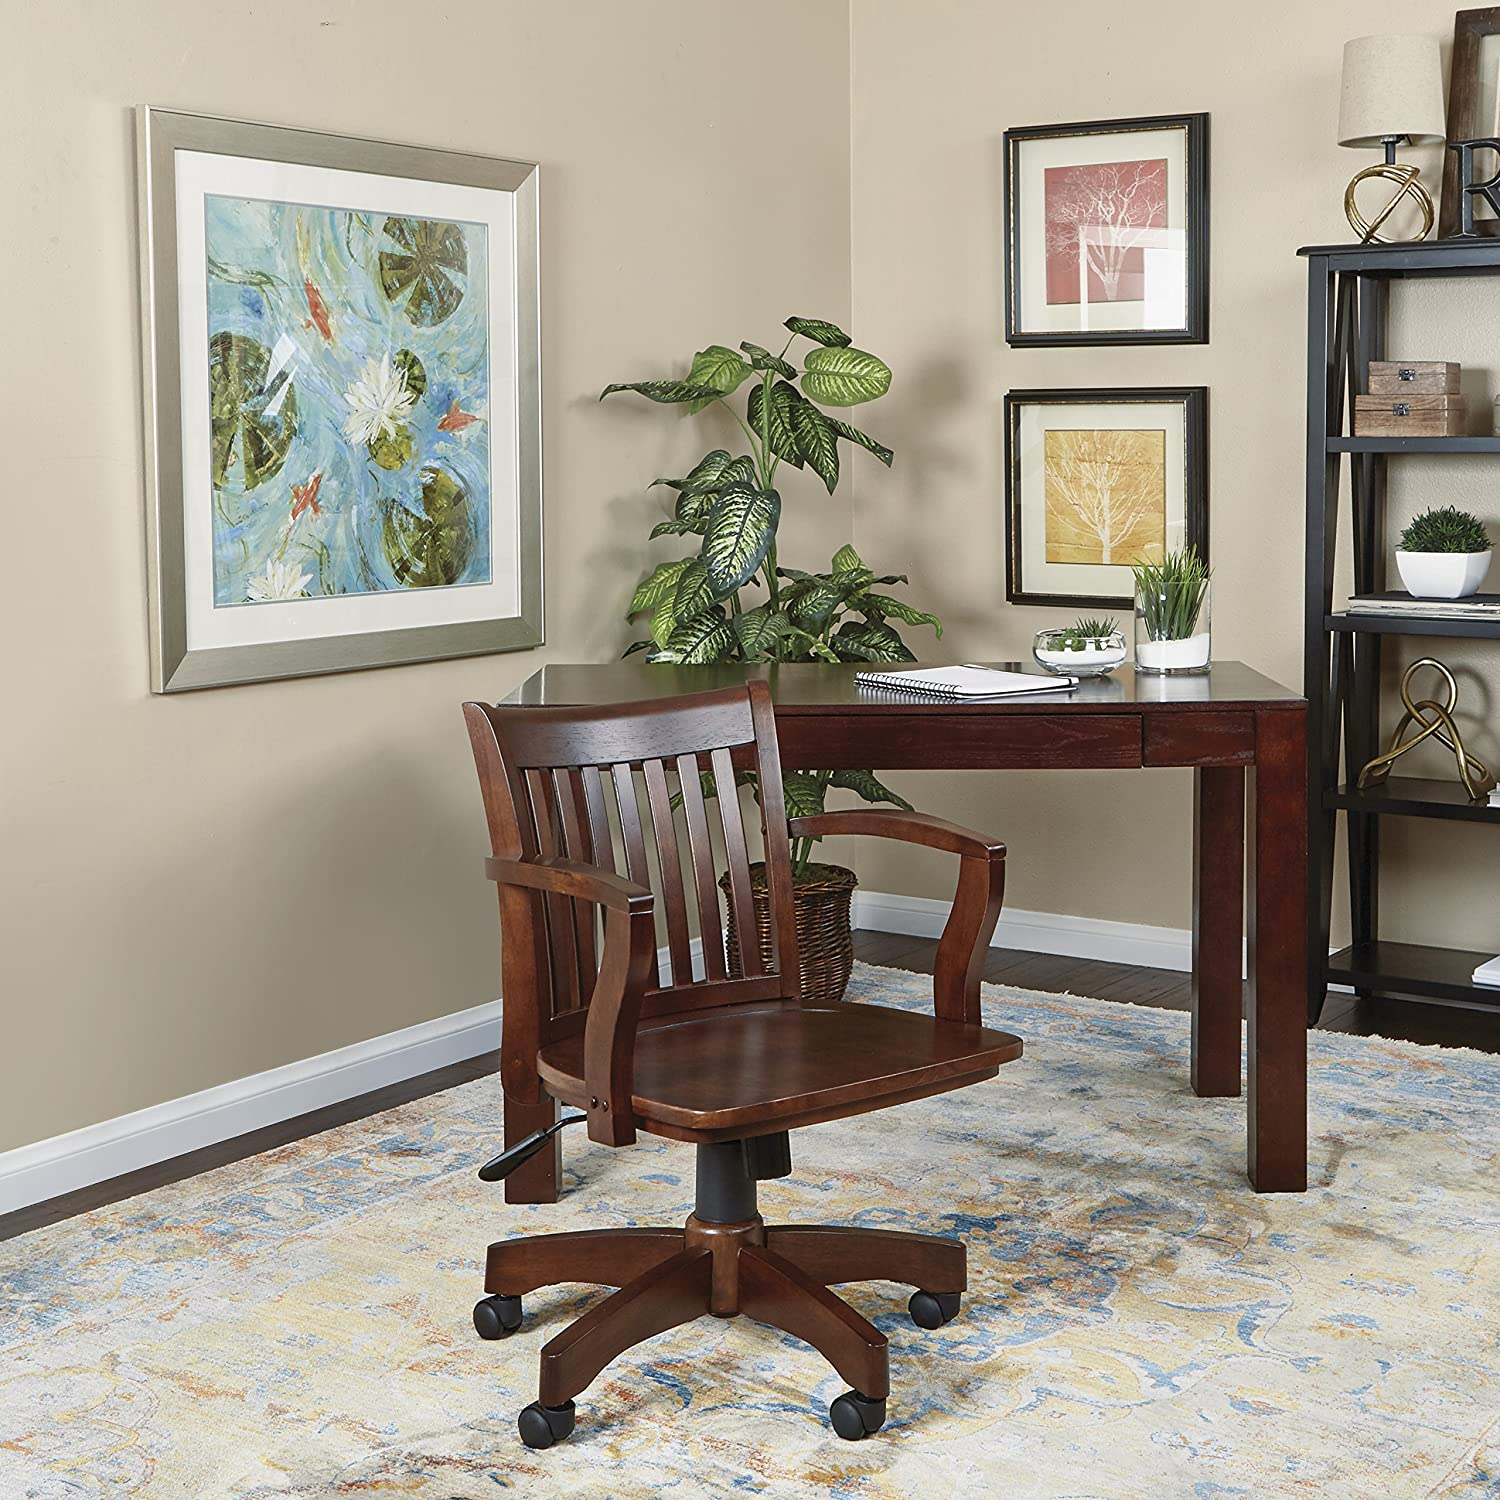 Amazon fice Star Deluxe Wood Bankers Desk Chair with Wood